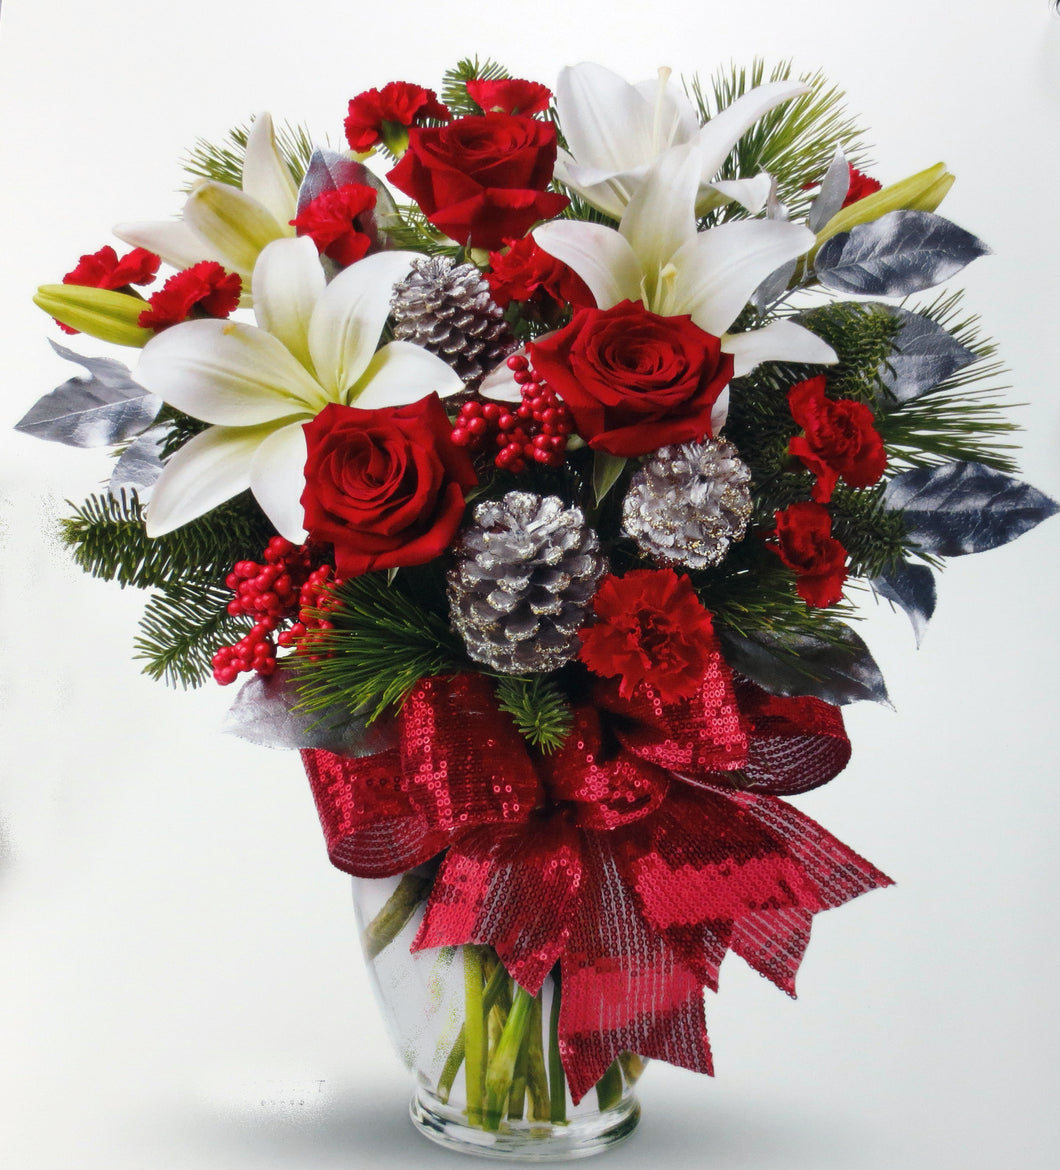 XA 1162 Beautiful heavy glass vase with loving reds, lilies/daisies and accents